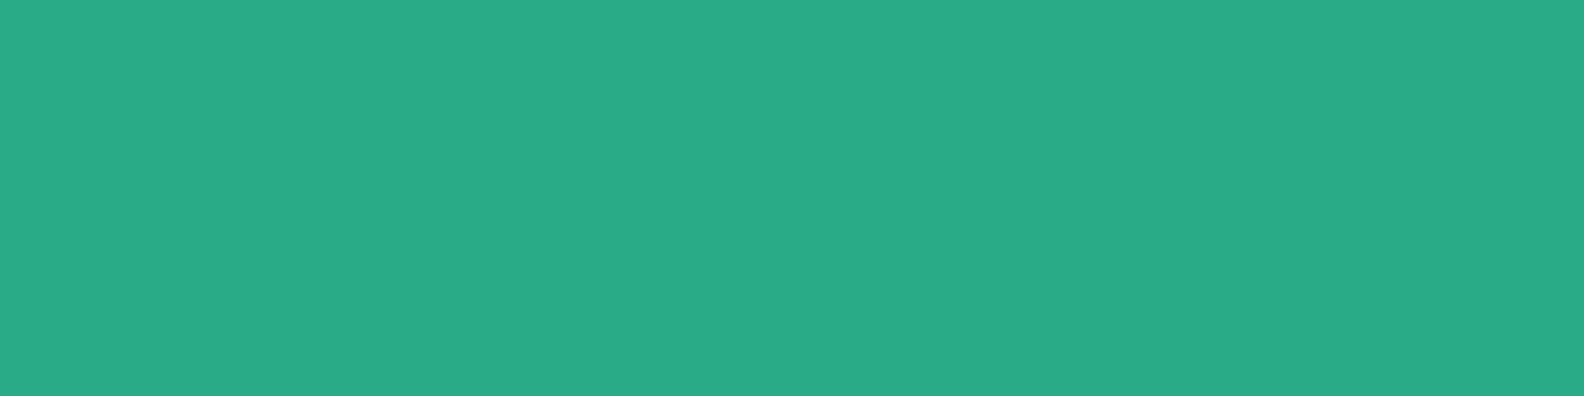 1584x396 Jungle Green Solid Color Background